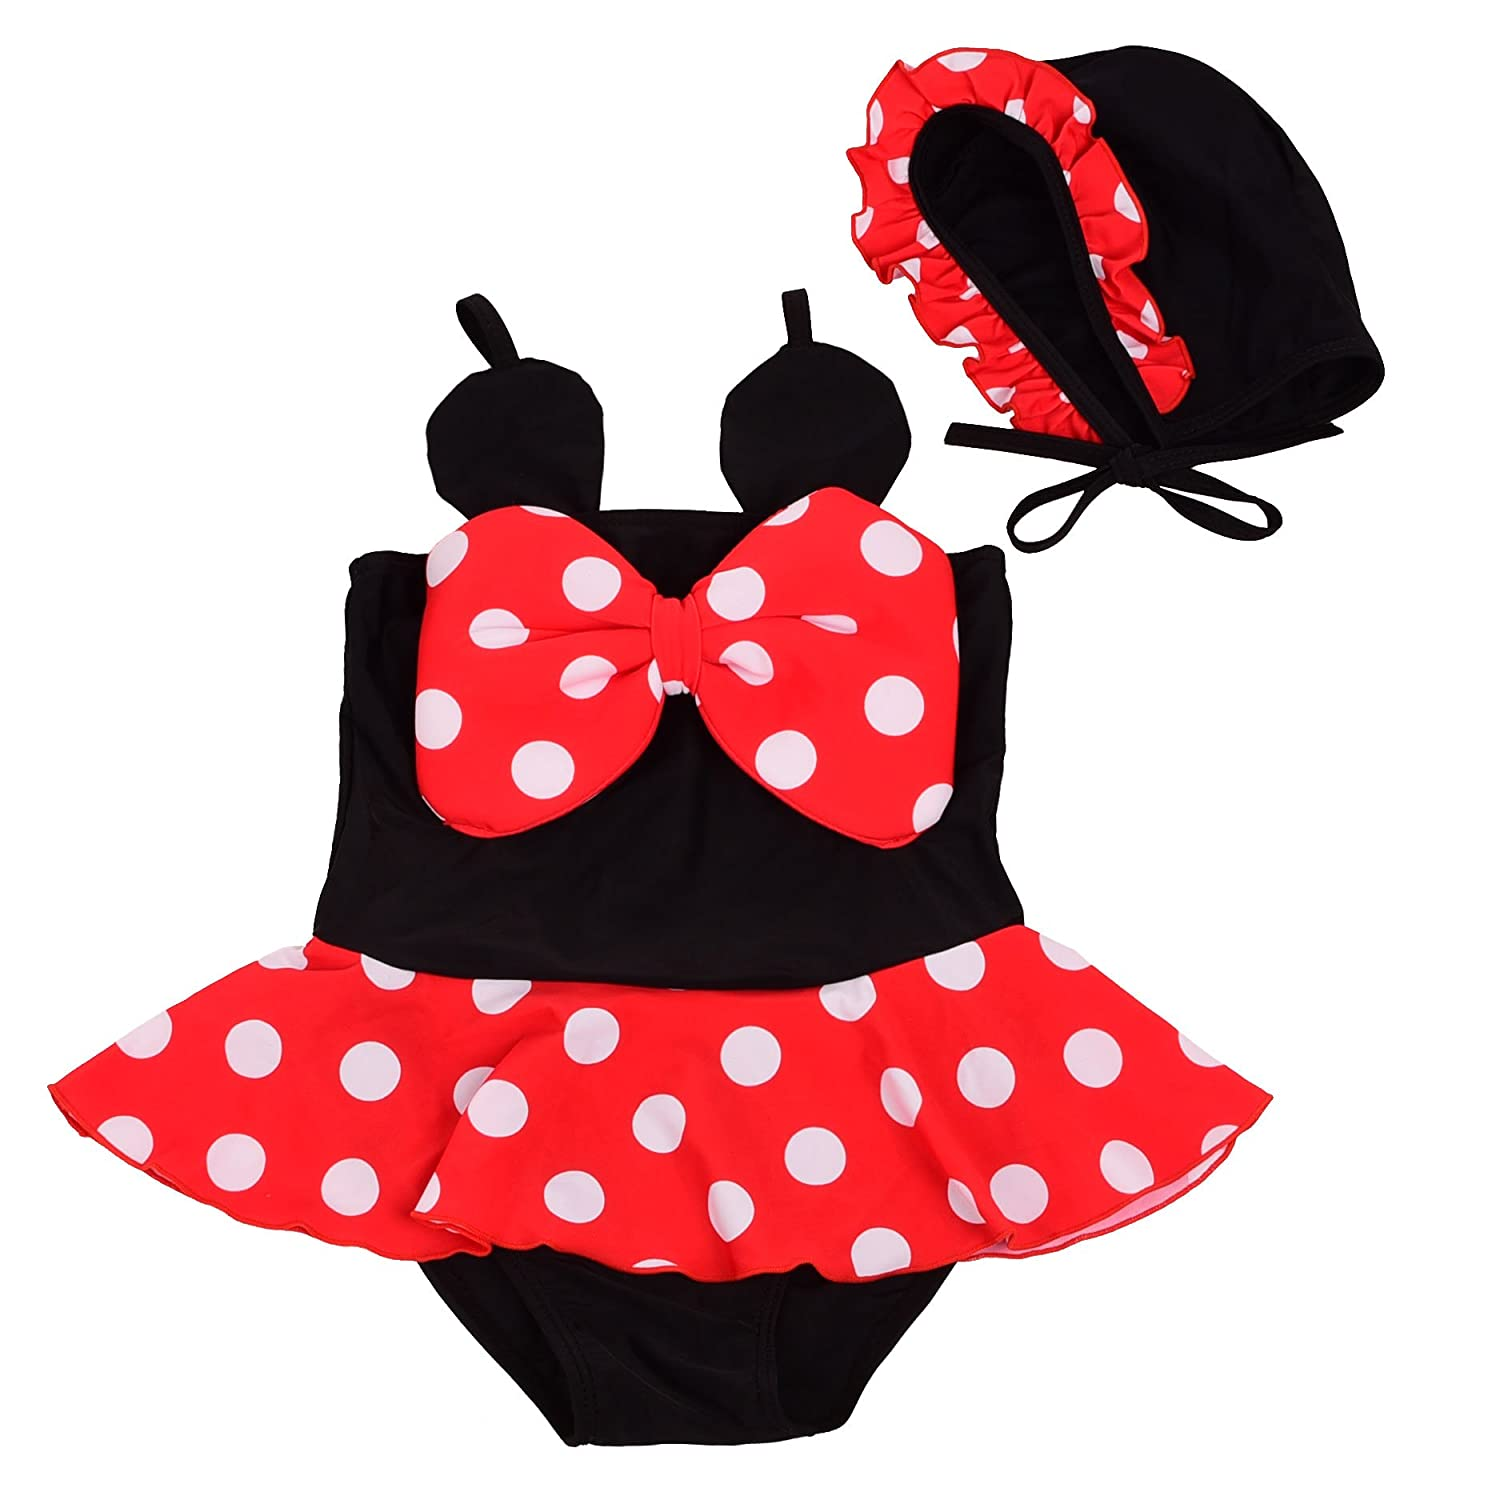 Dressy Daisy Girls' Polka Dots Bathing Suits Swimsuits with Hat